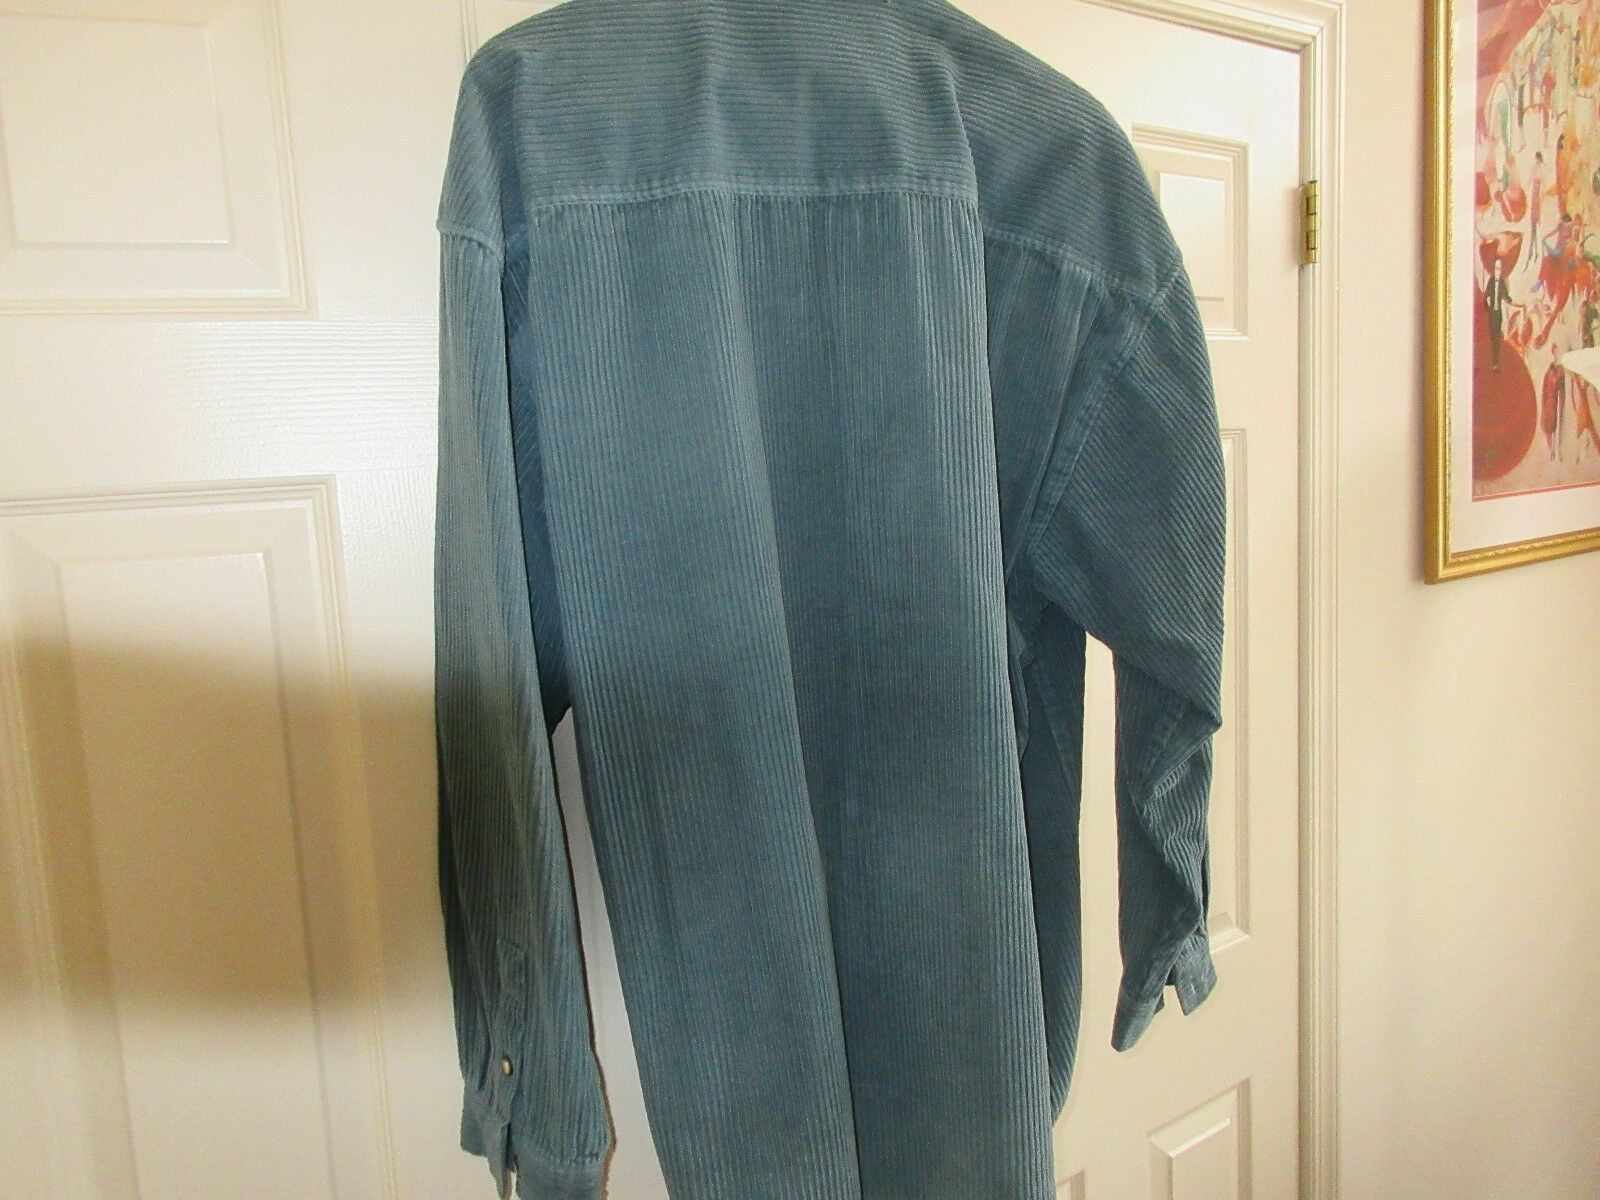 Supplies Men's Wear, Men's Sweater / Jacket , Size XL,